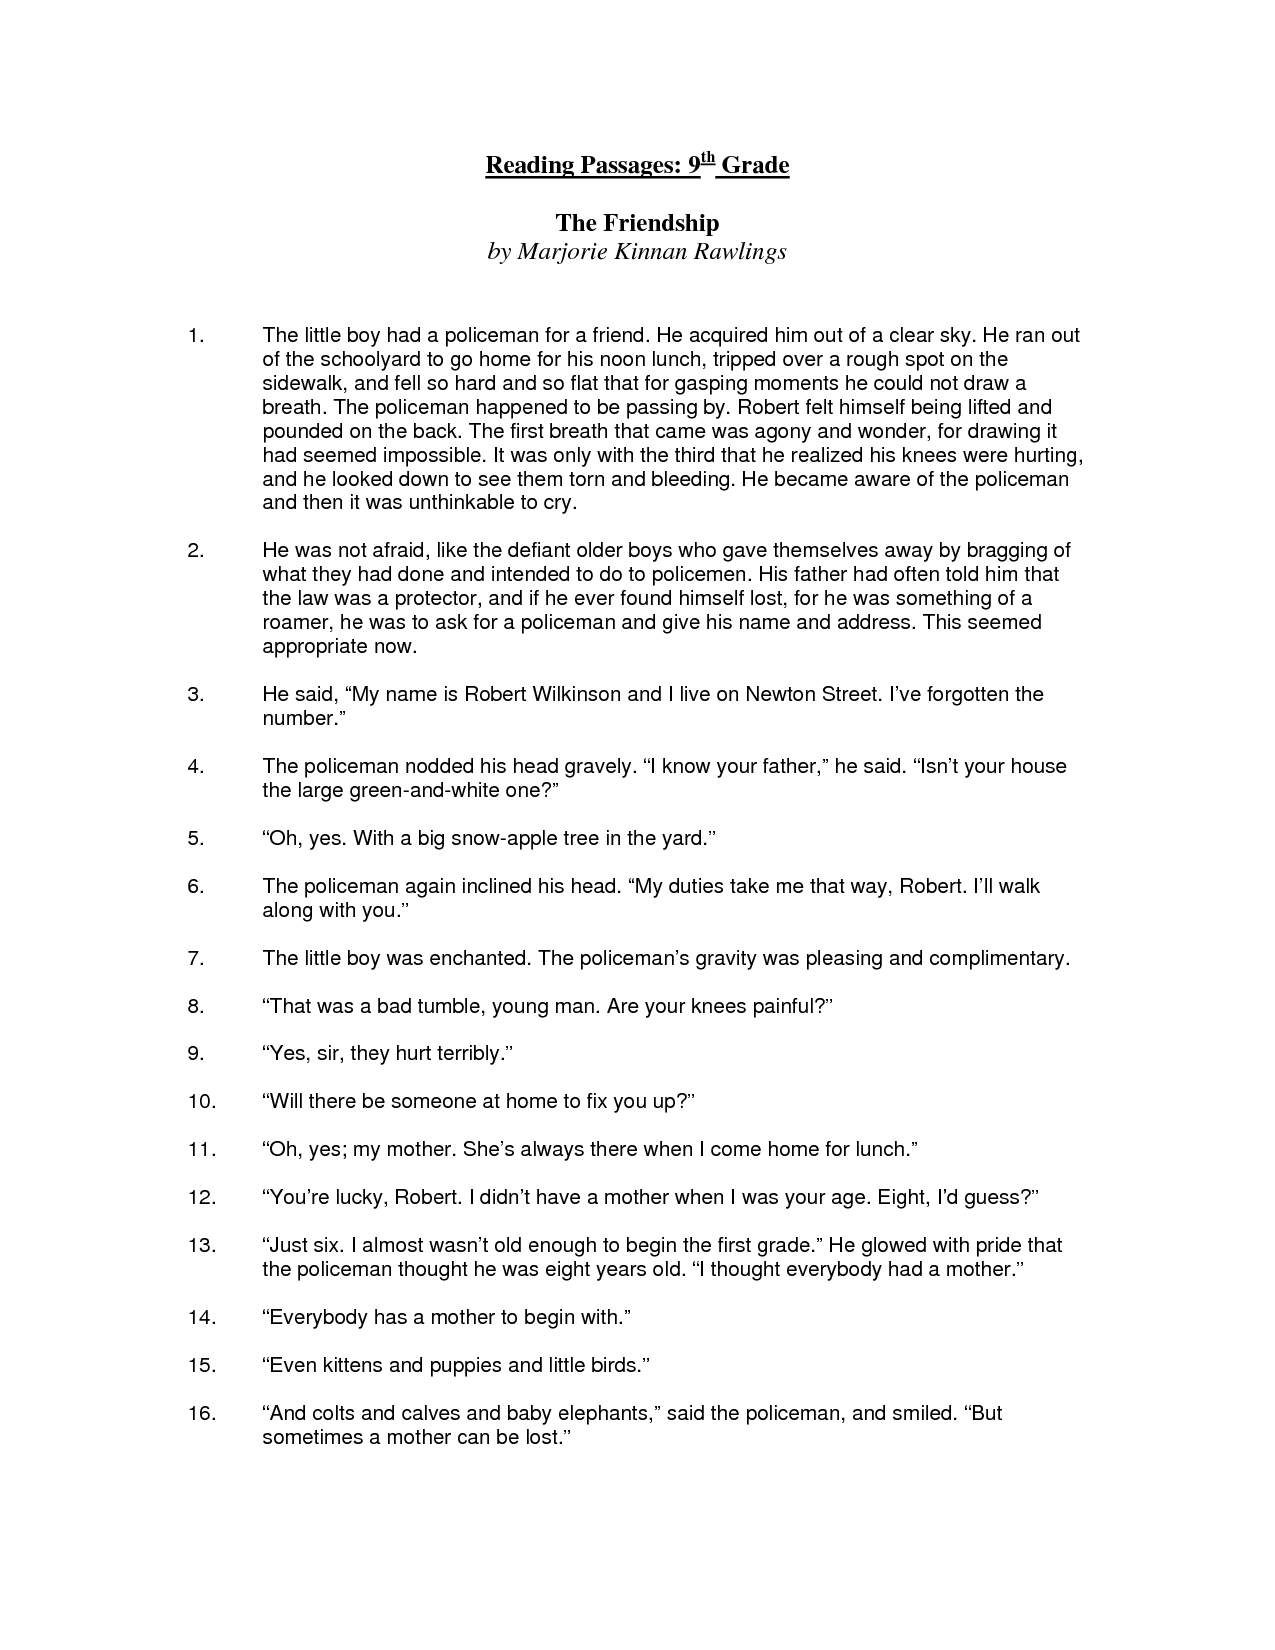 Thomas Edison Worksheet